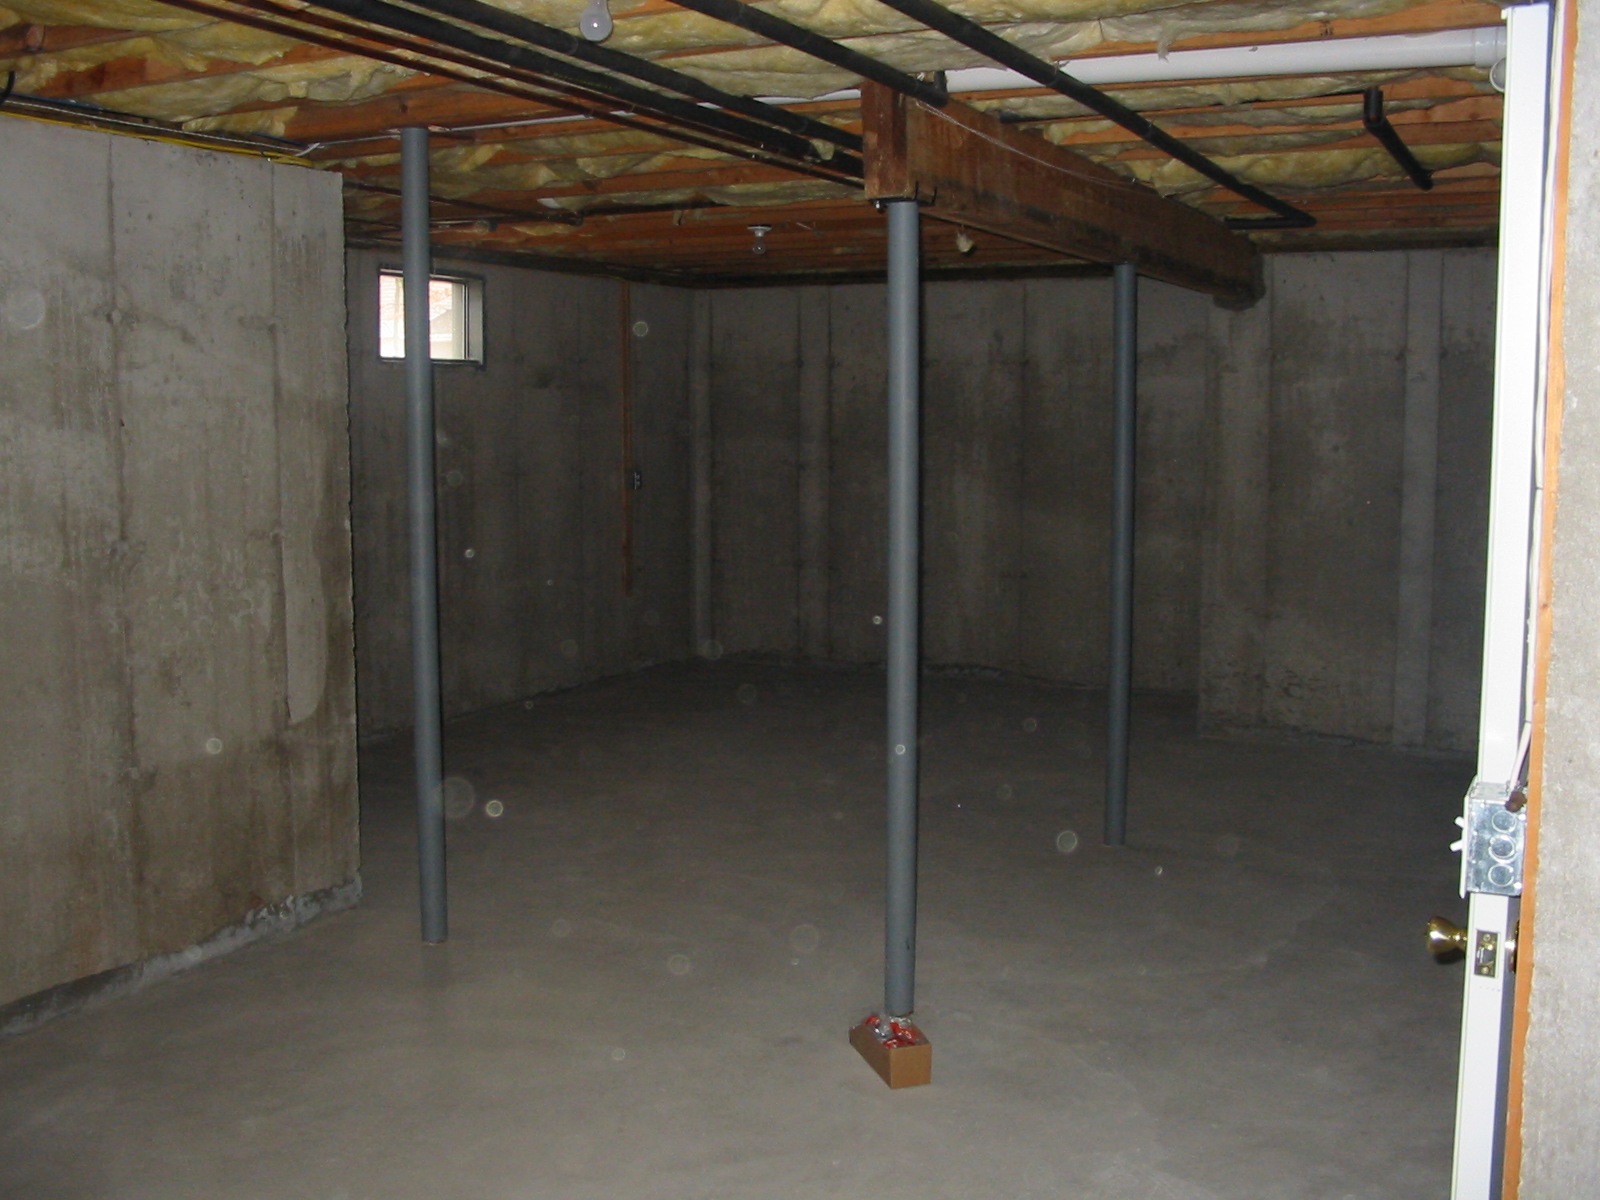 insulation is in the basement ceiling under the first floor